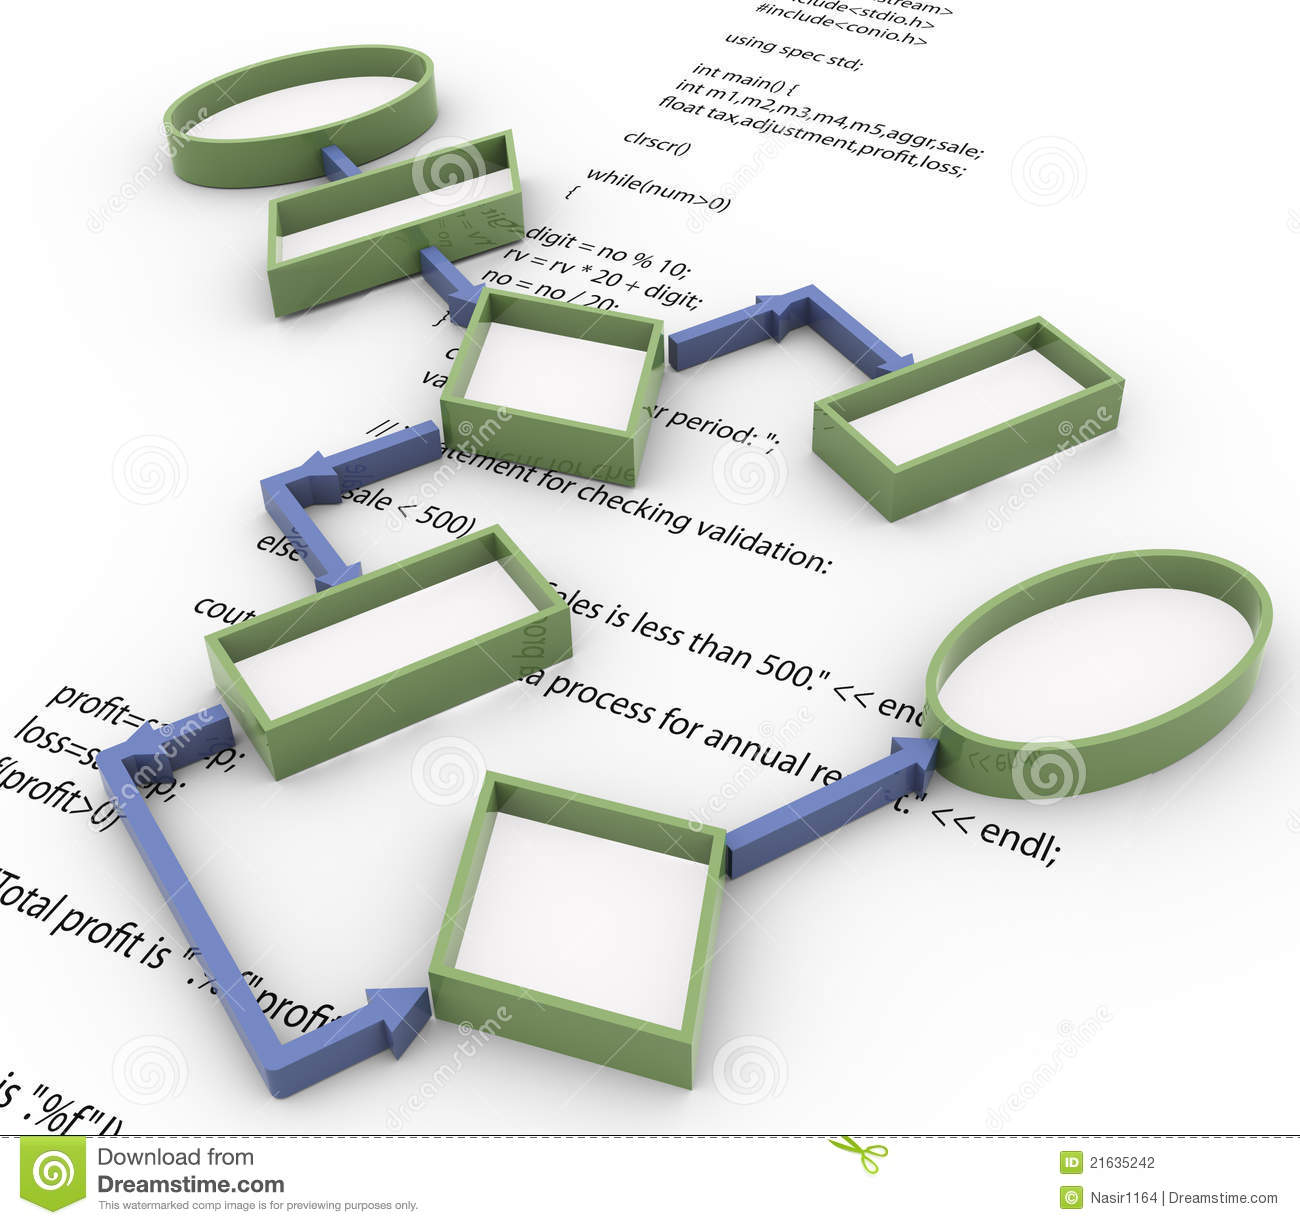 3d flowchart on code snippet background stock photography image 21635242 for 3d flow chart